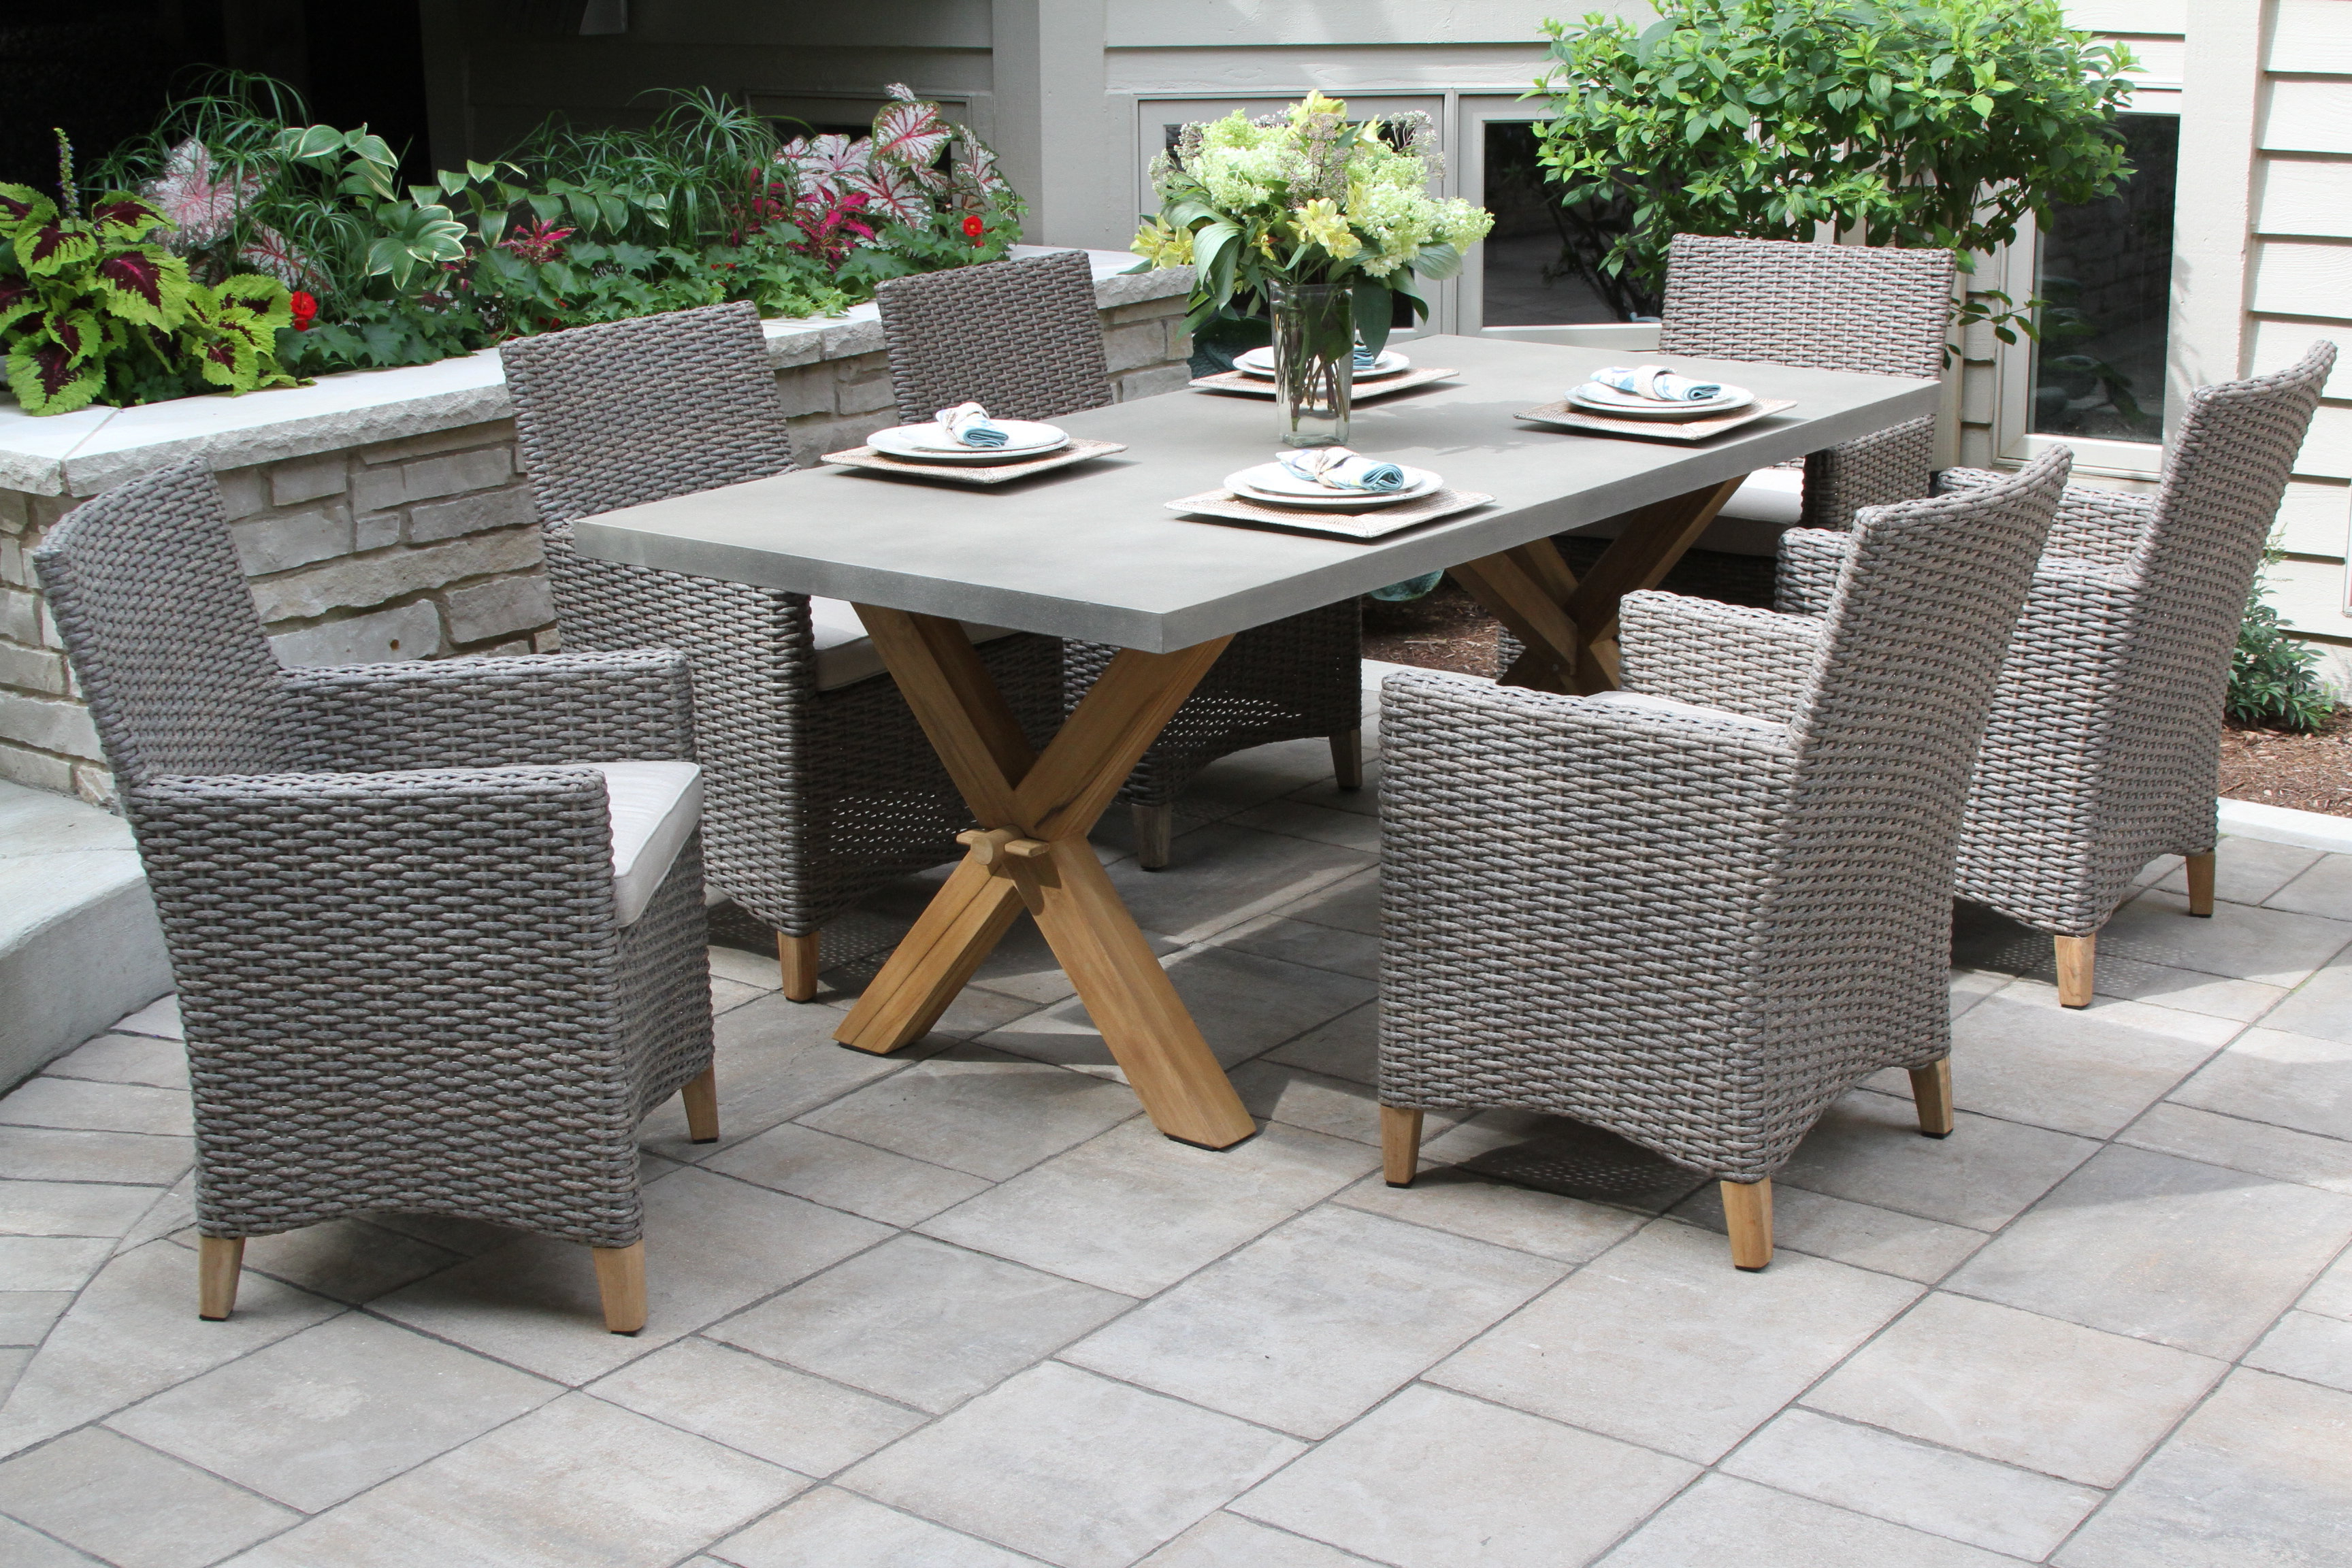 Rossi 5 Piece Dining Sets With Regard To Current Stedman 7 Piece Teak Dining Set With Sunbrella Cushions (Gallery 15 of 20)